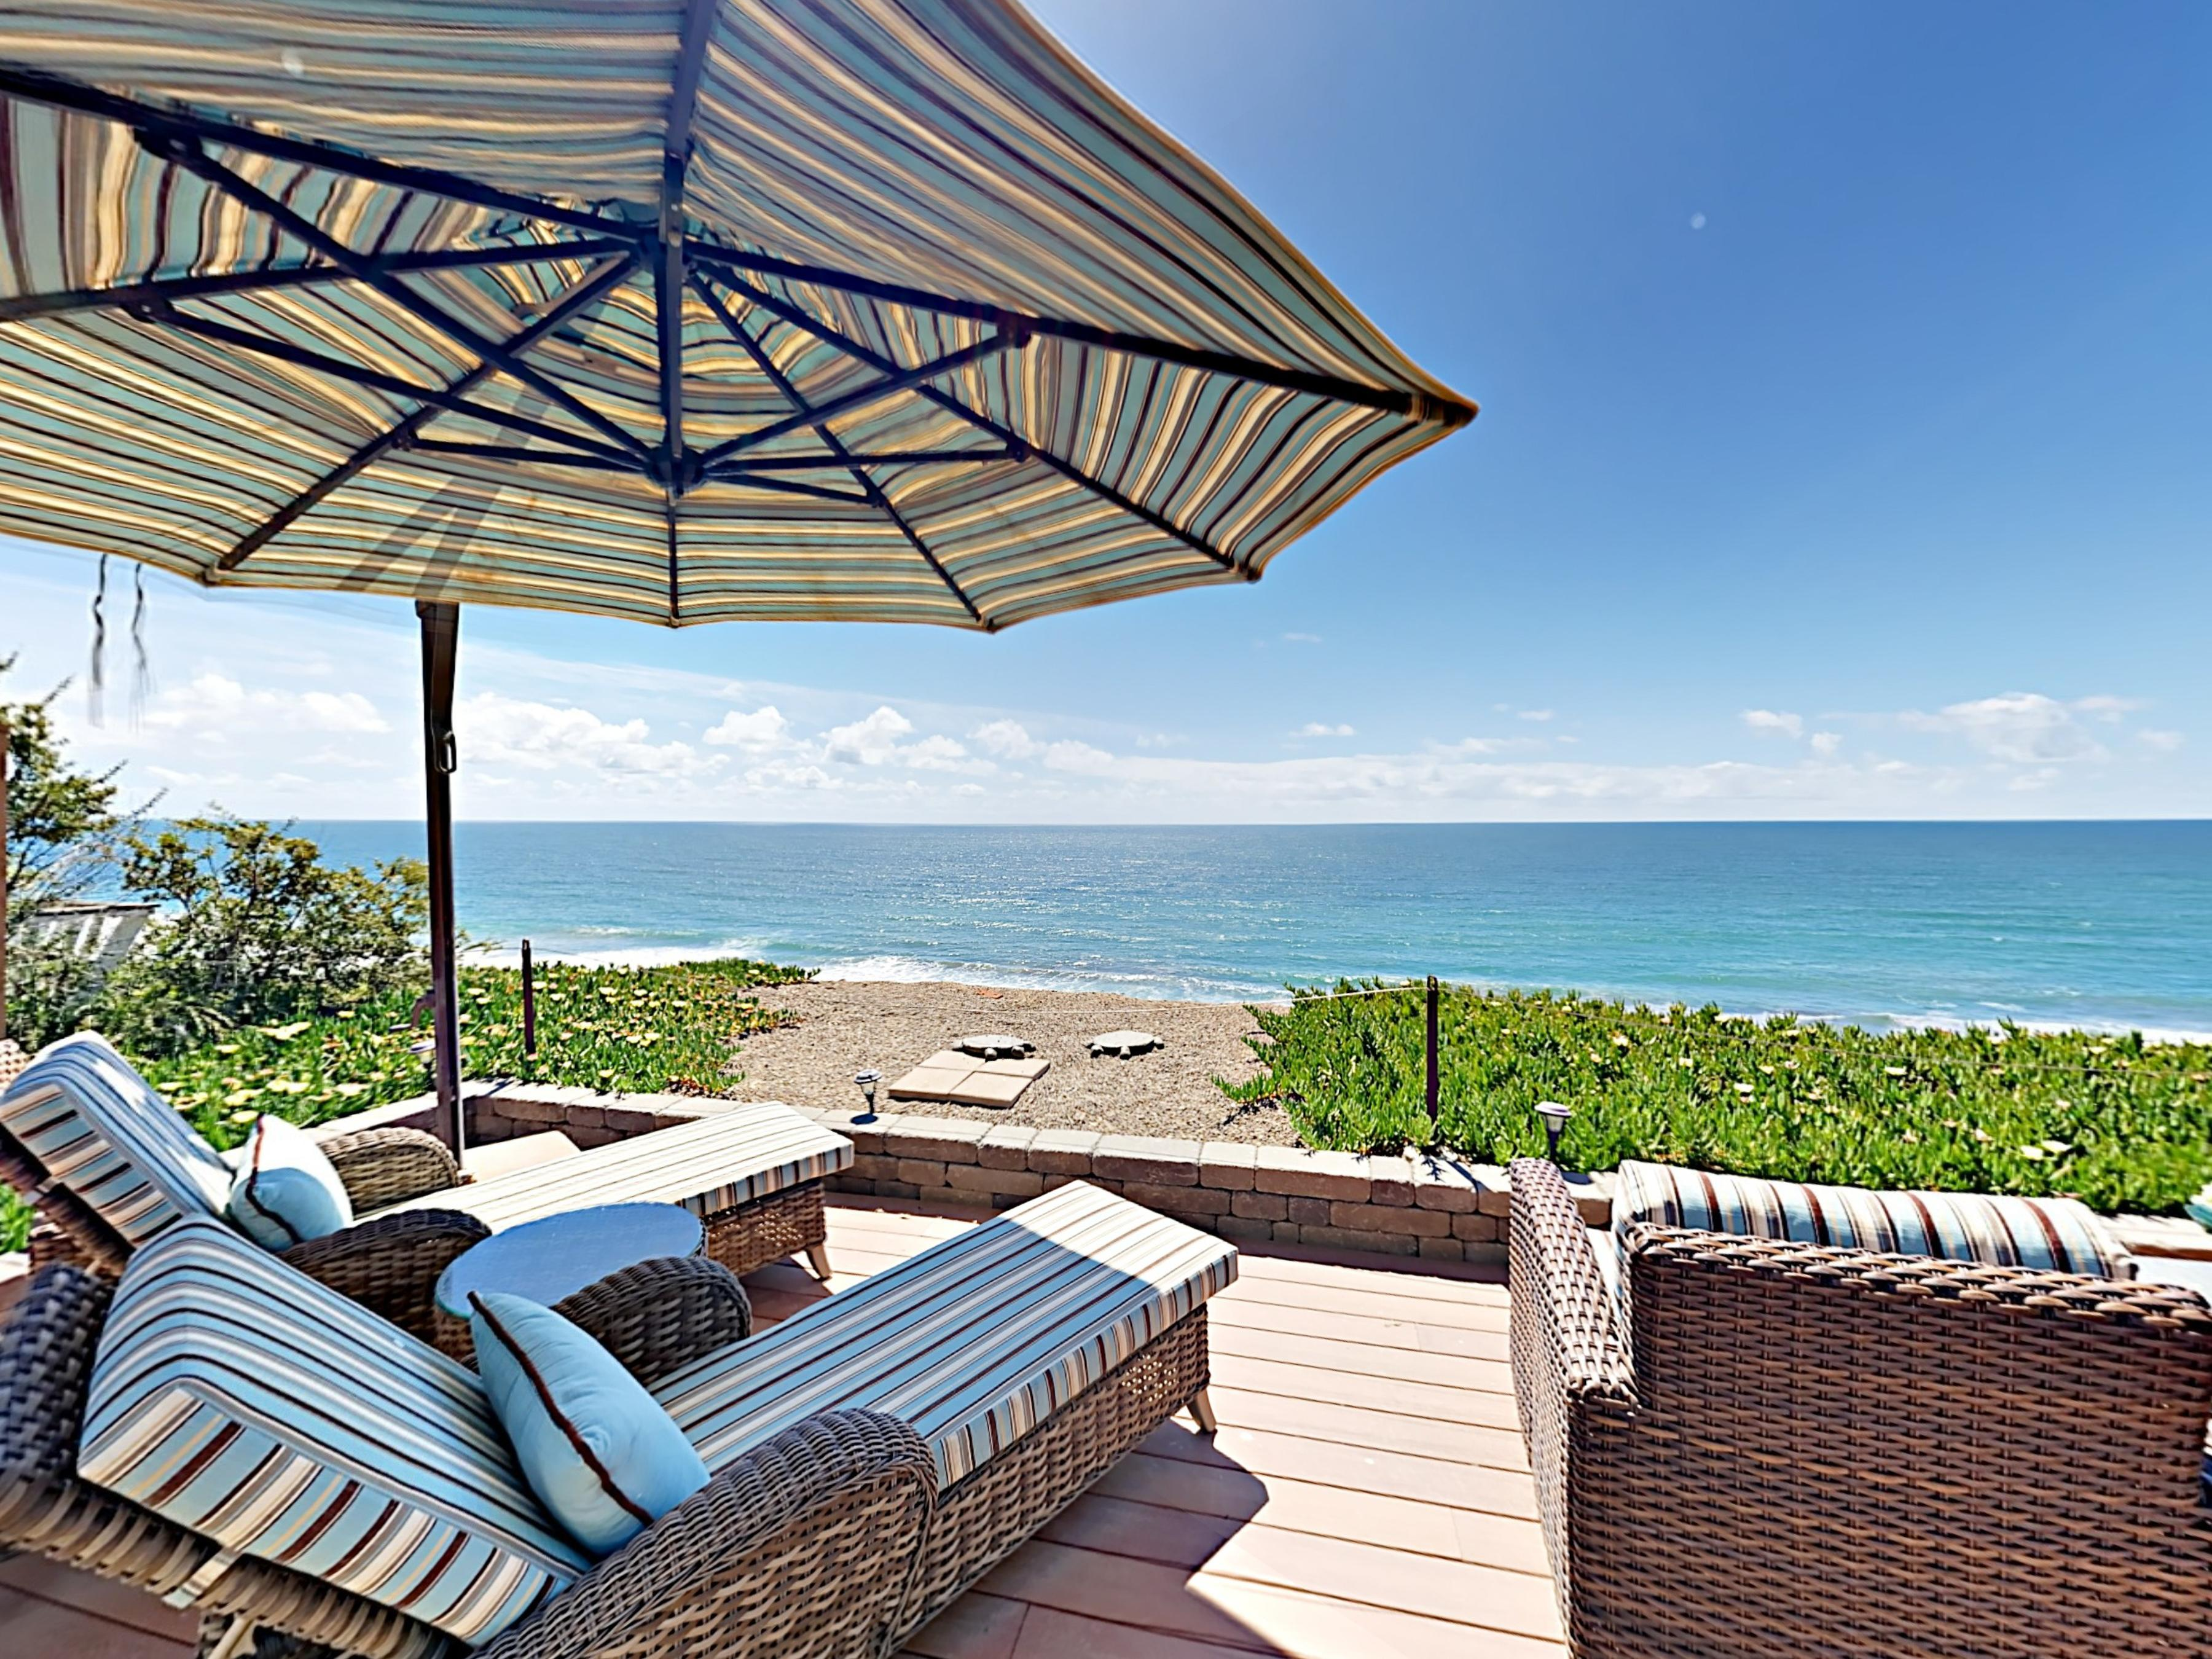 Welcome to Encinitas! Your rental is professionally managed by TurnKey Vacation Rentals.